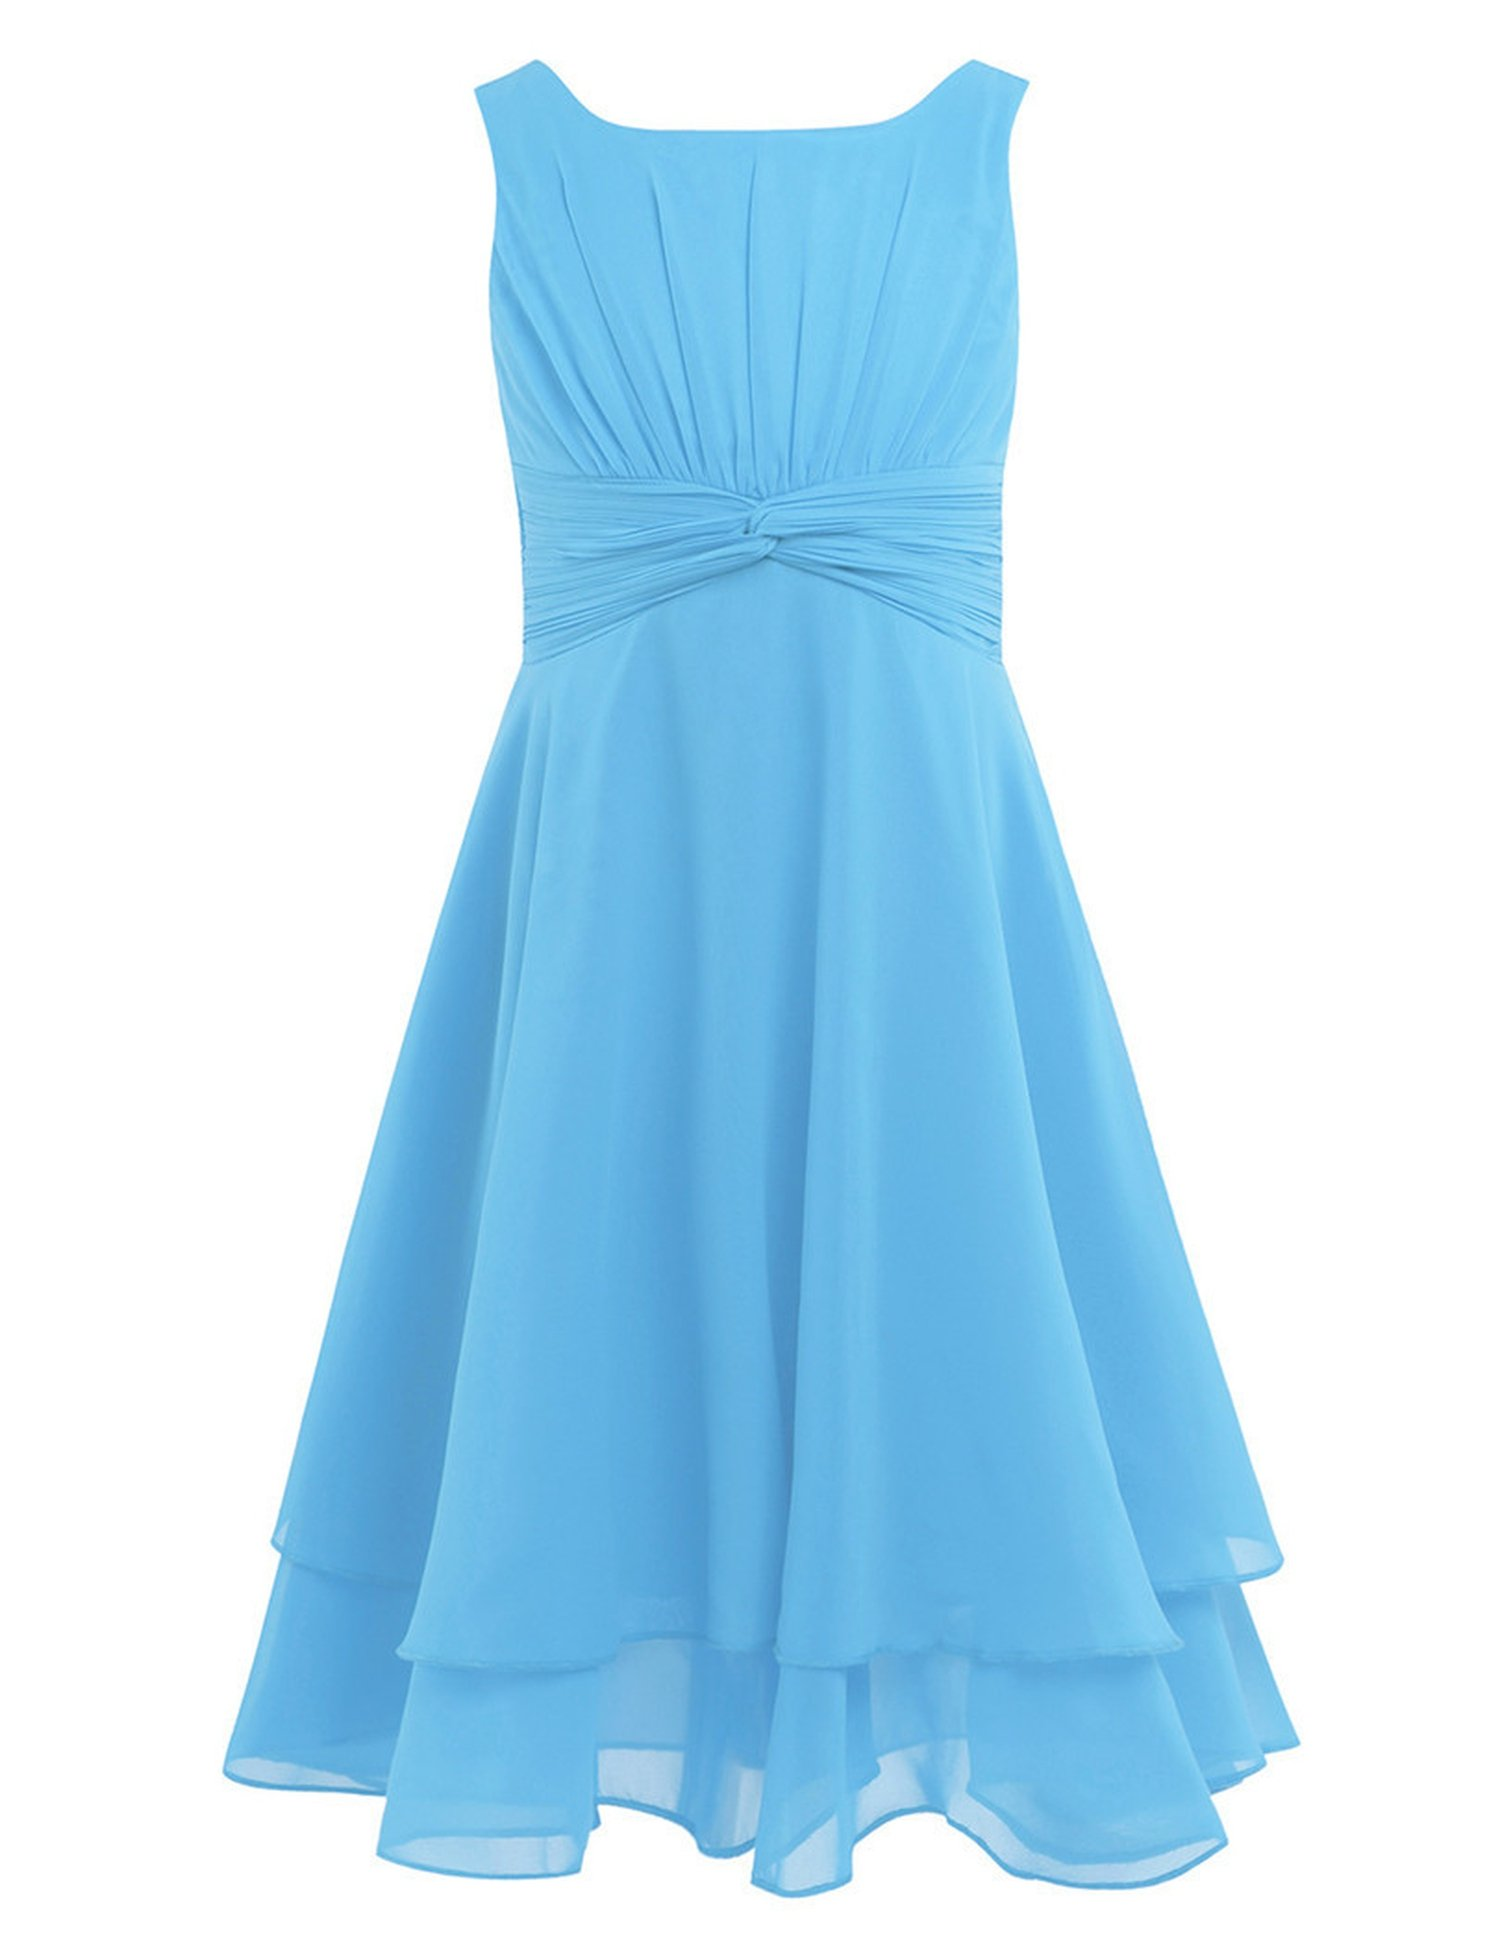 Toping Fine girl dress Flower Girl Summer Dress Vestidos De Primera Comunion for Weddings Ball Gowns Knee Length Dresses,Sky Blue,Child-12 by Toping Fine girl dress (Image #1)